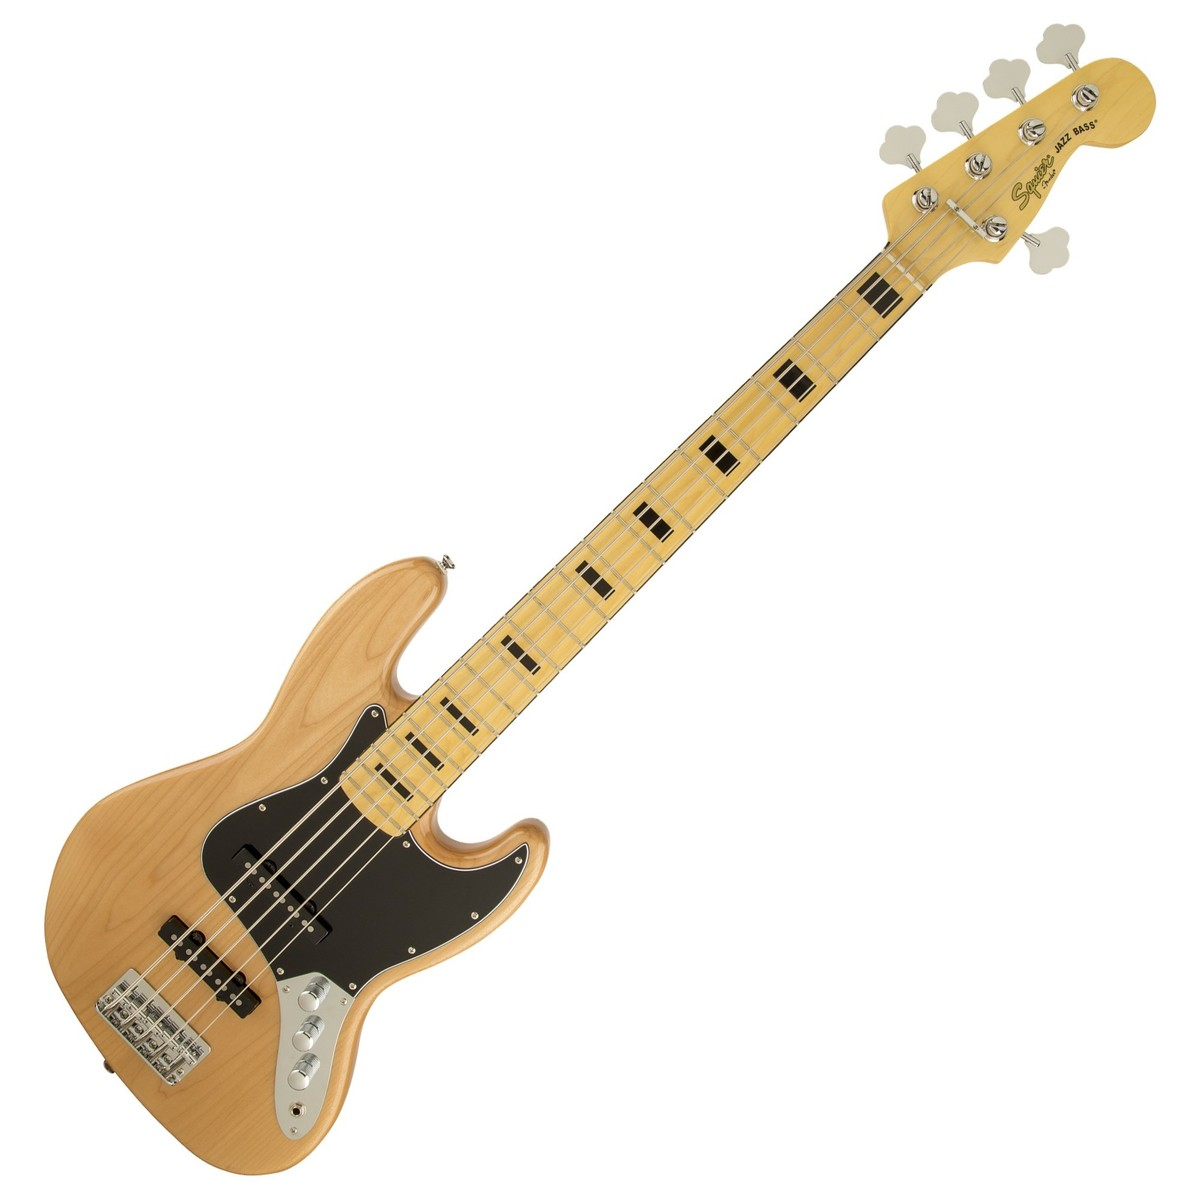 Squier Vintage Modified Jazz Bass V 5